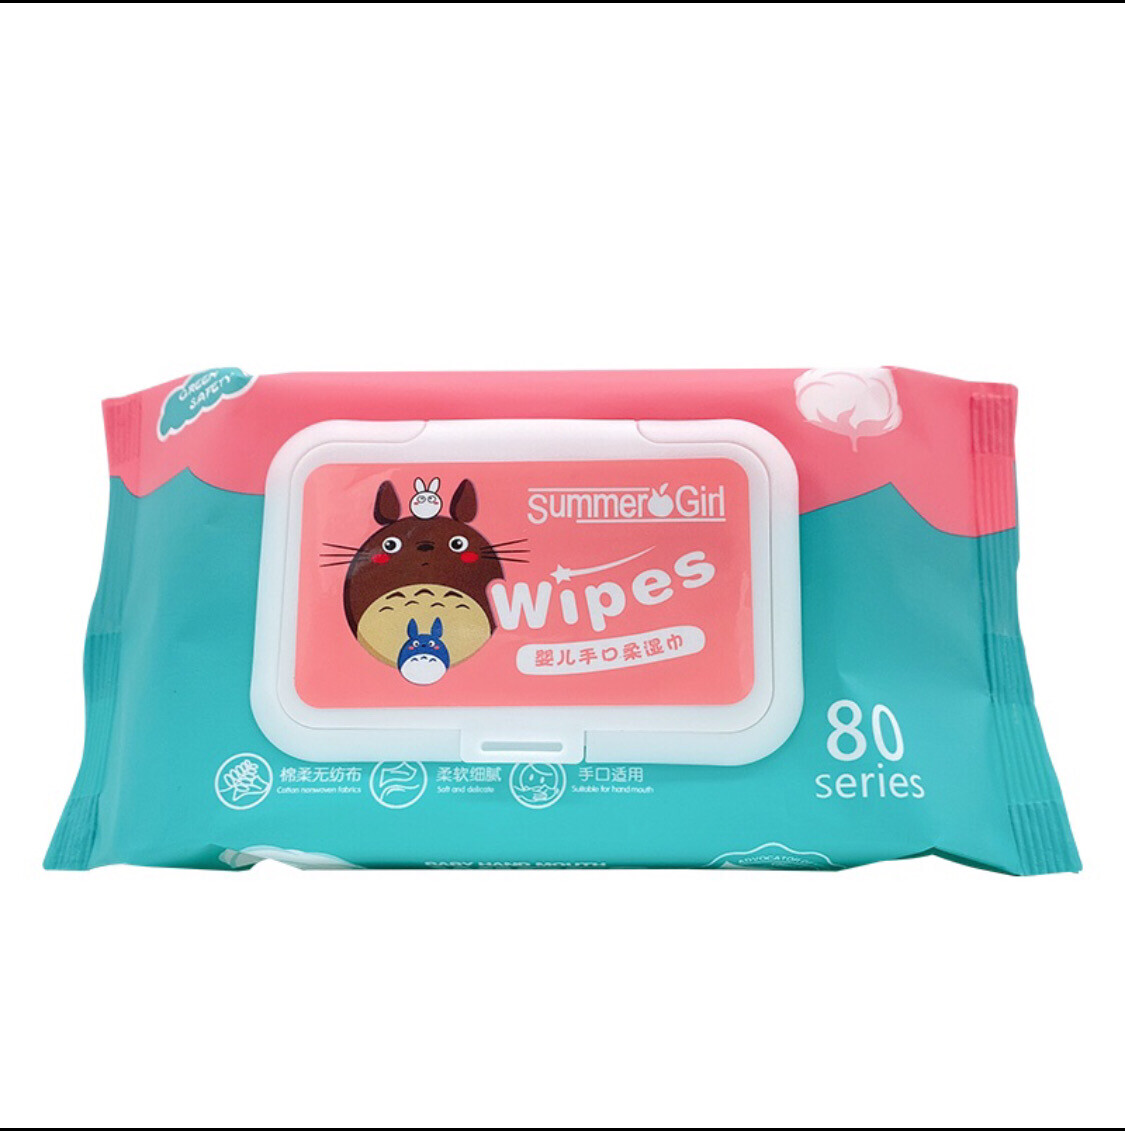 BABY WIPES (Non-Alcohol-wet wipes) Summer Girl Brand 80 Sheets Per Pack